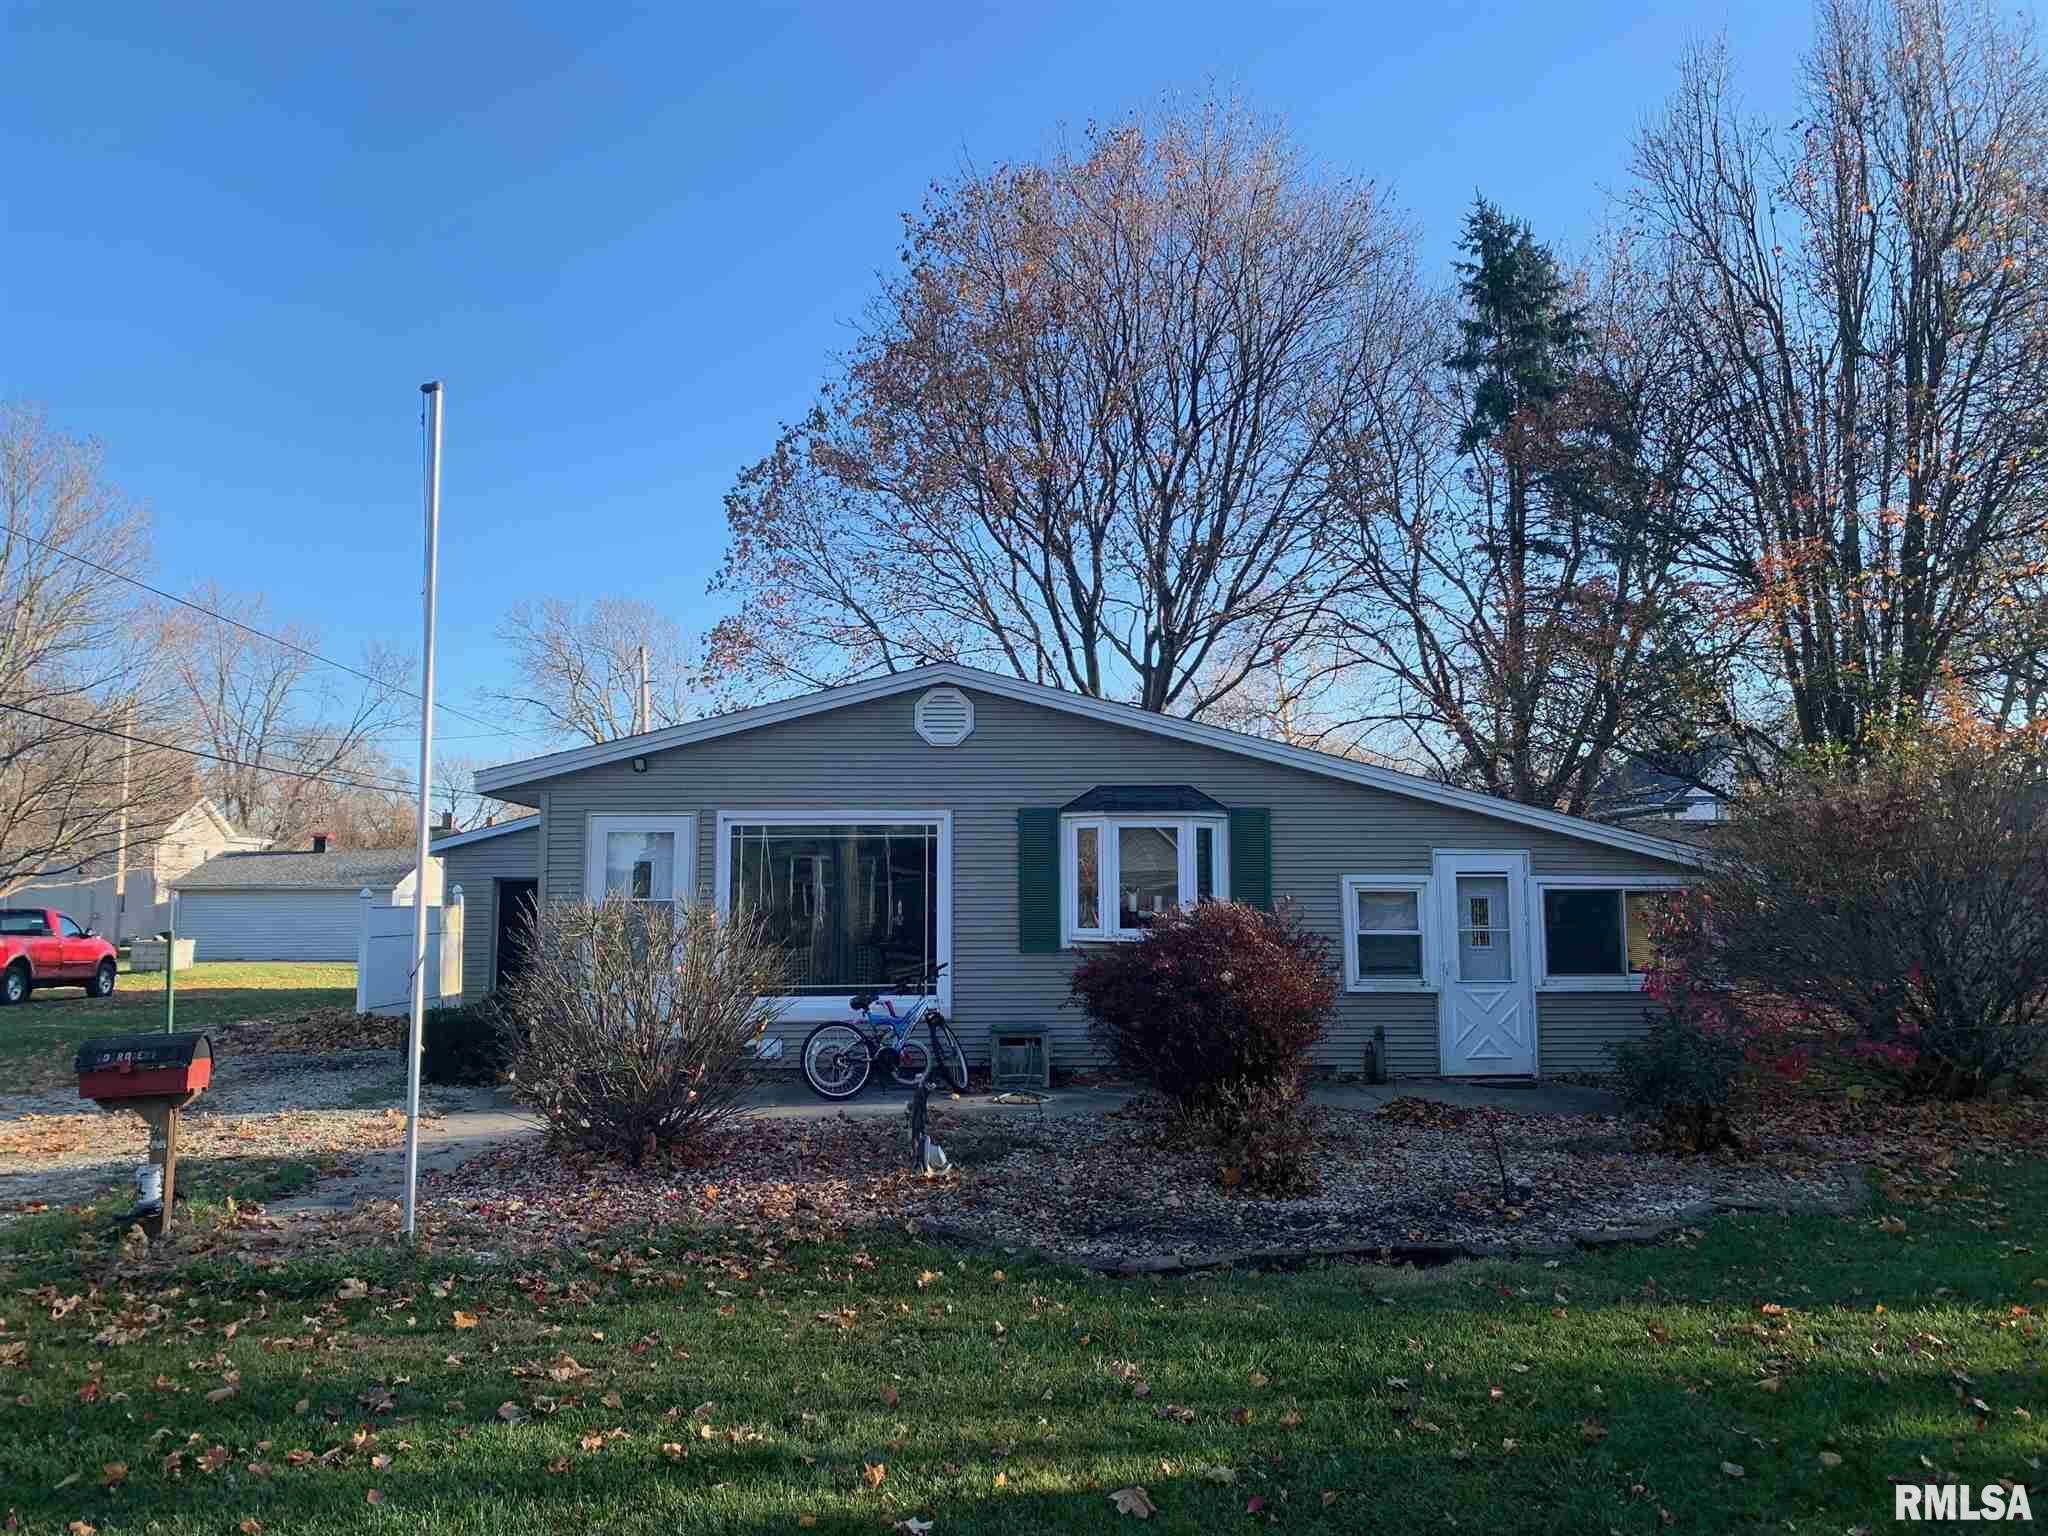 608 ROBERT Property Photo - Henry, IL real estate listing